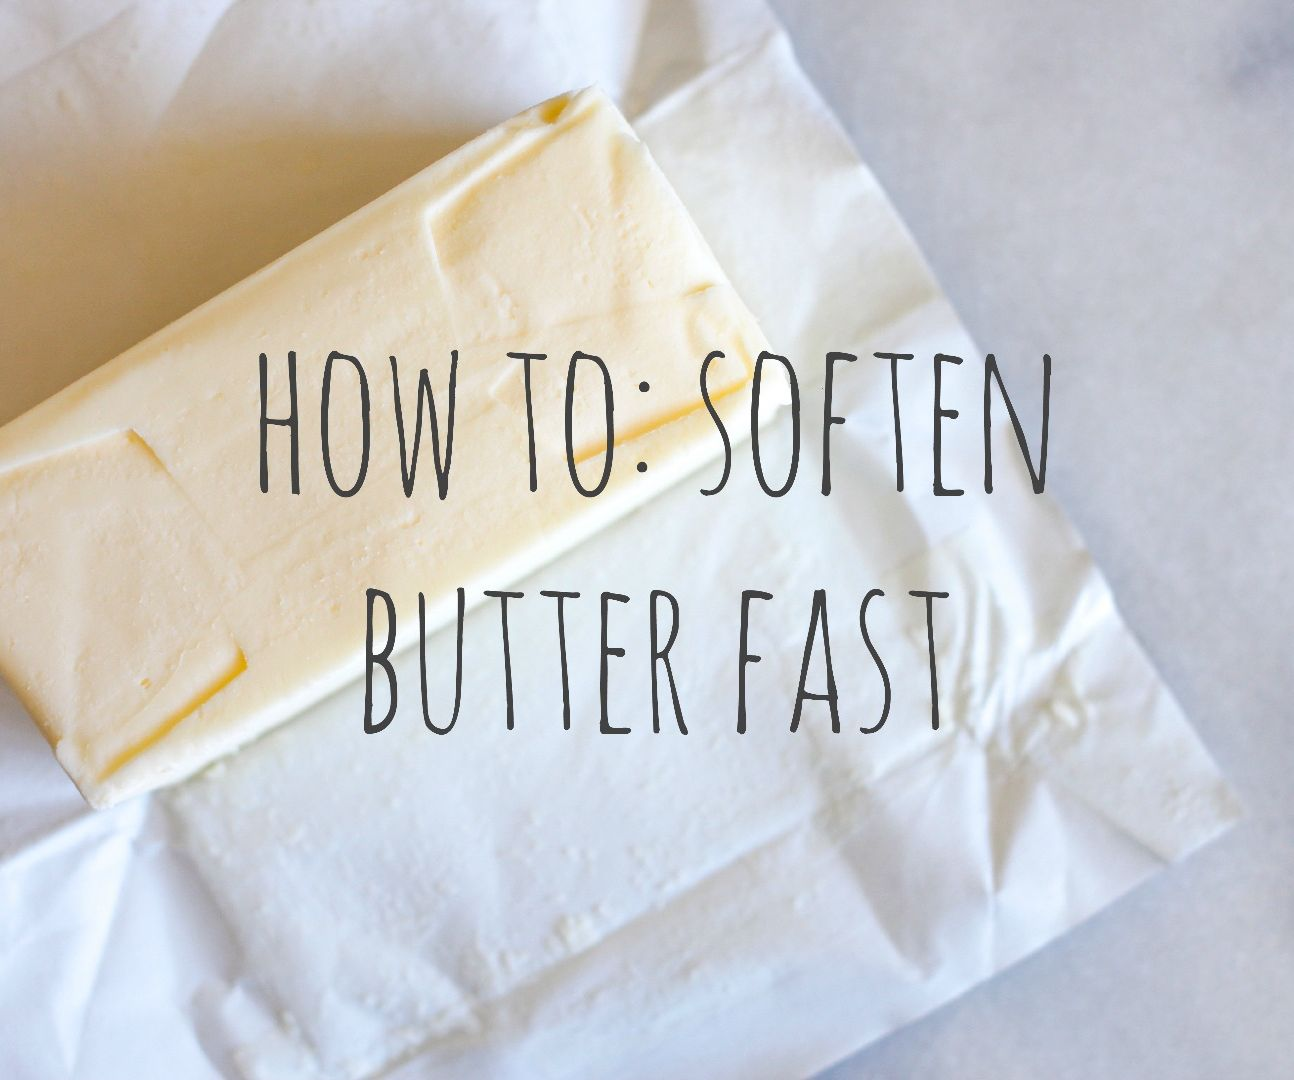 how to soften butter fast